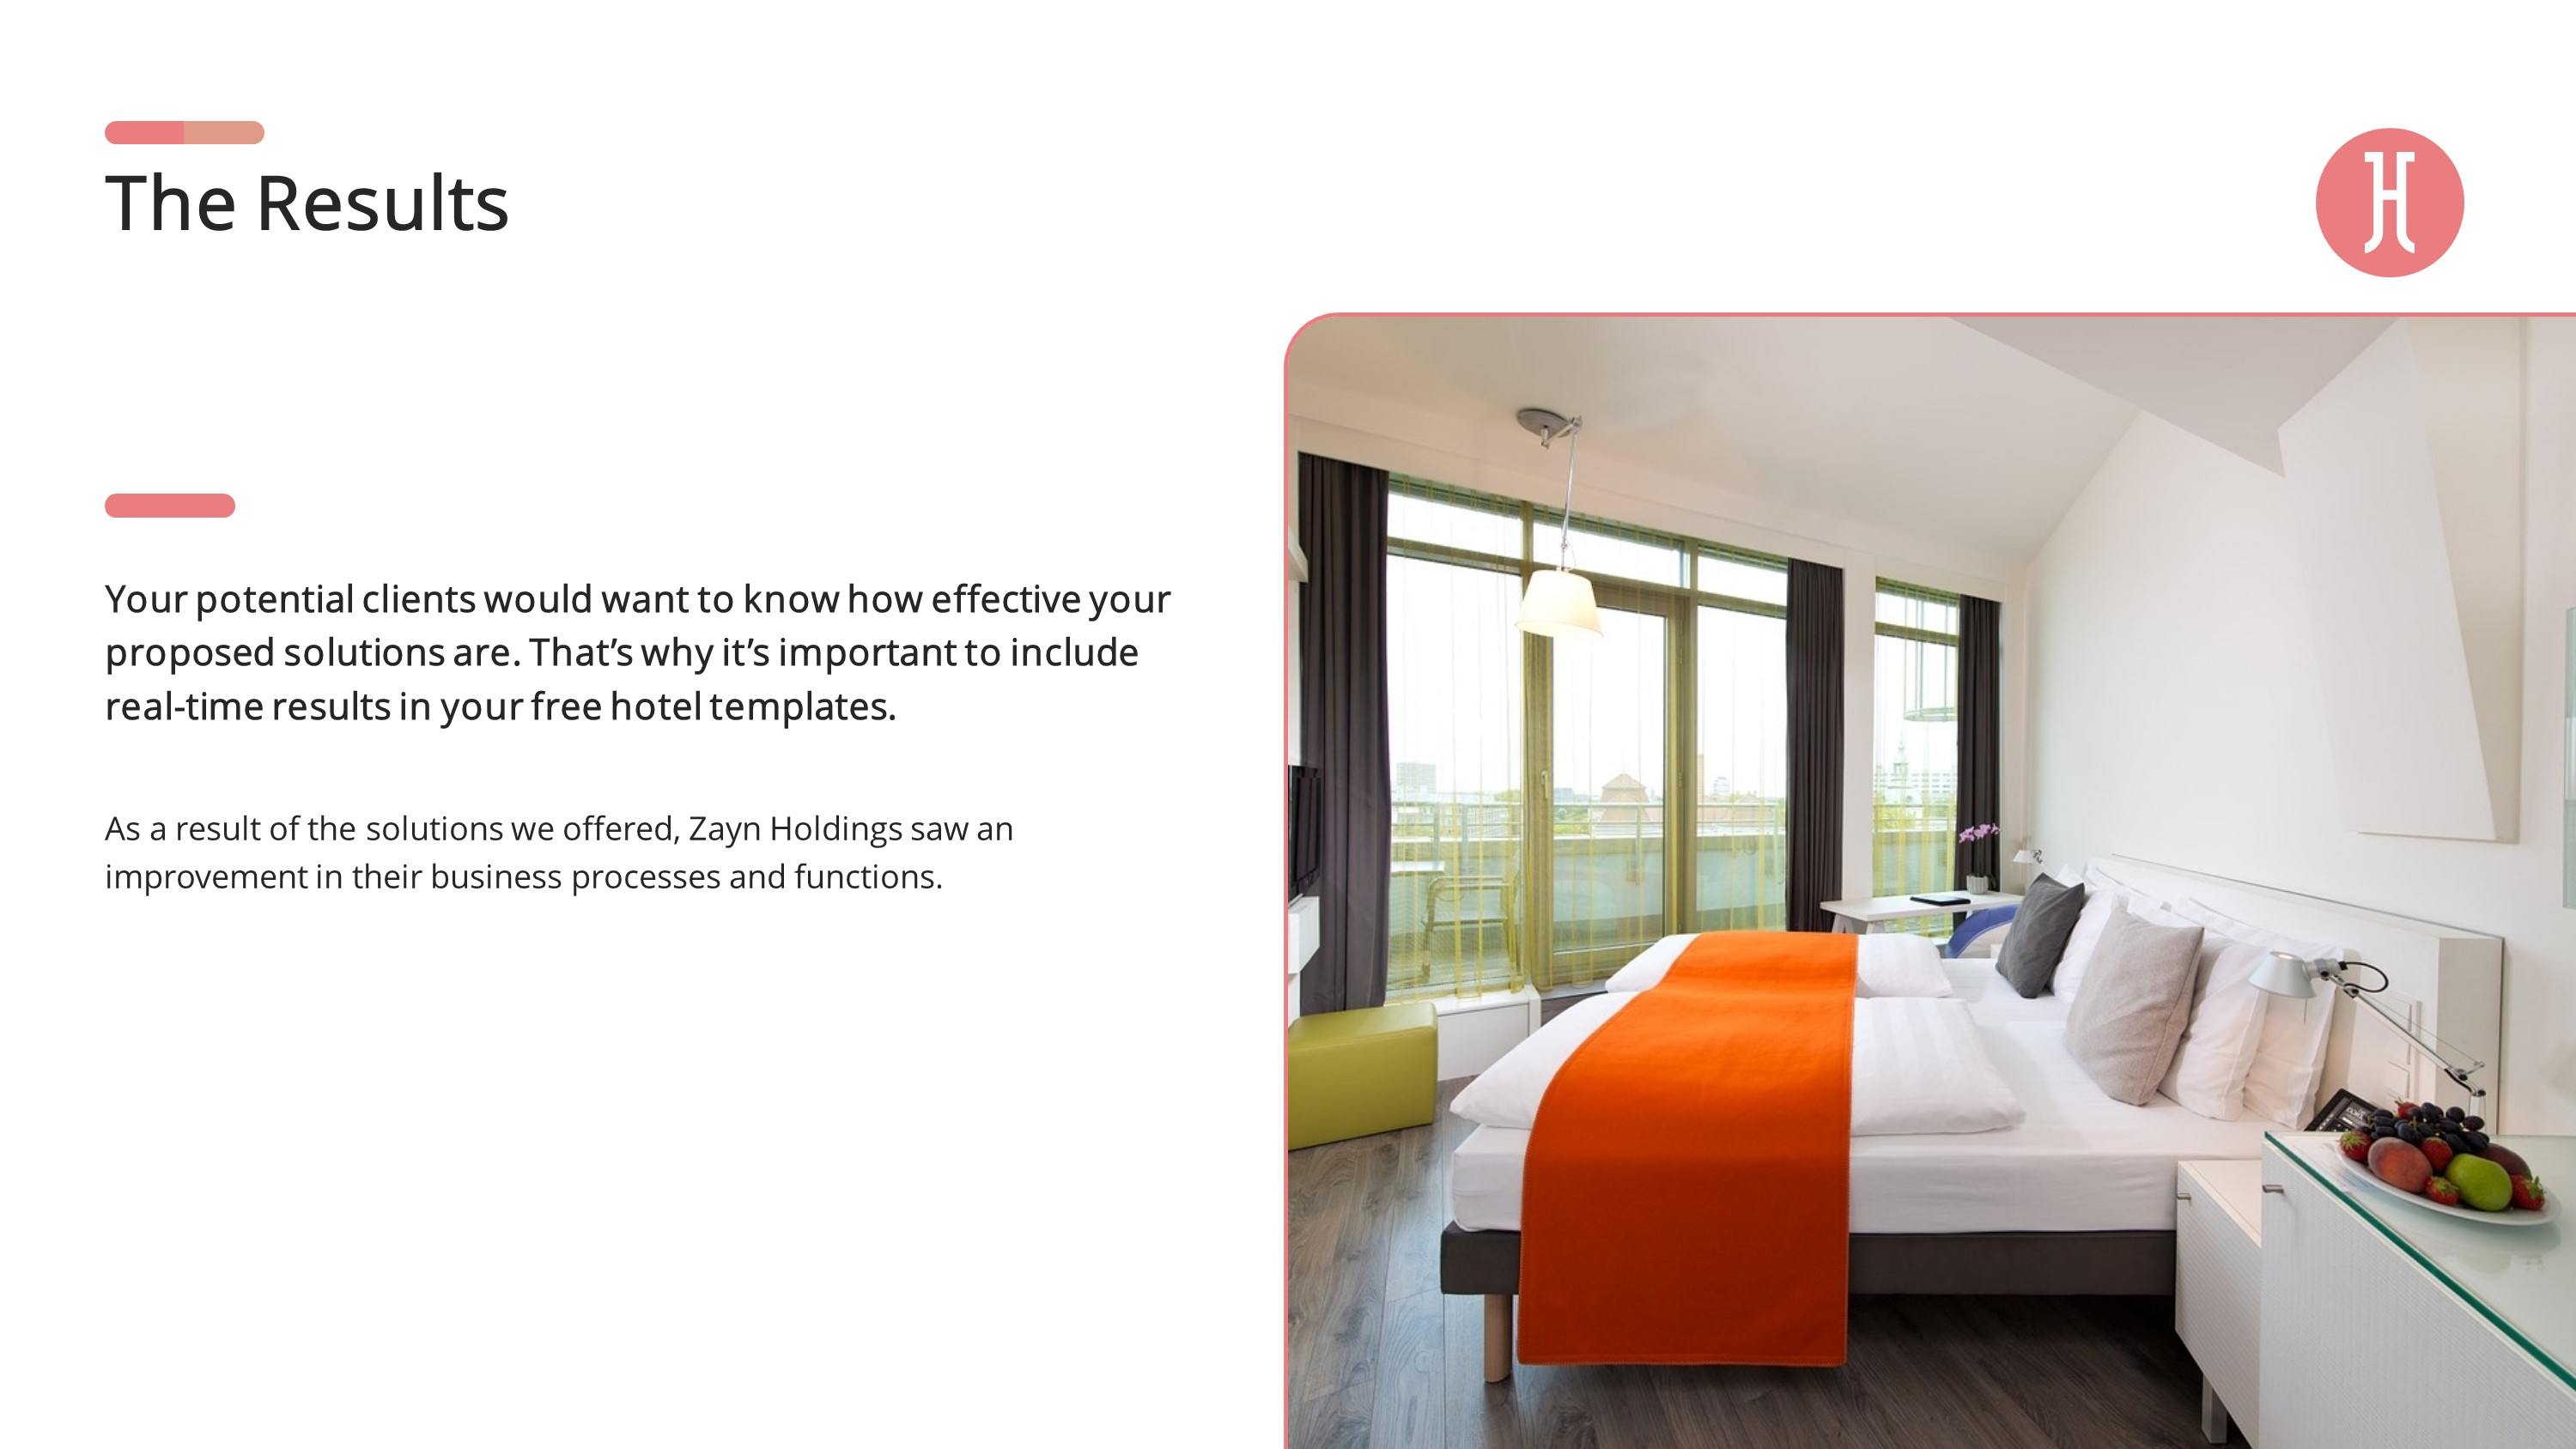 Hotel Business Premium PowerPoint Template